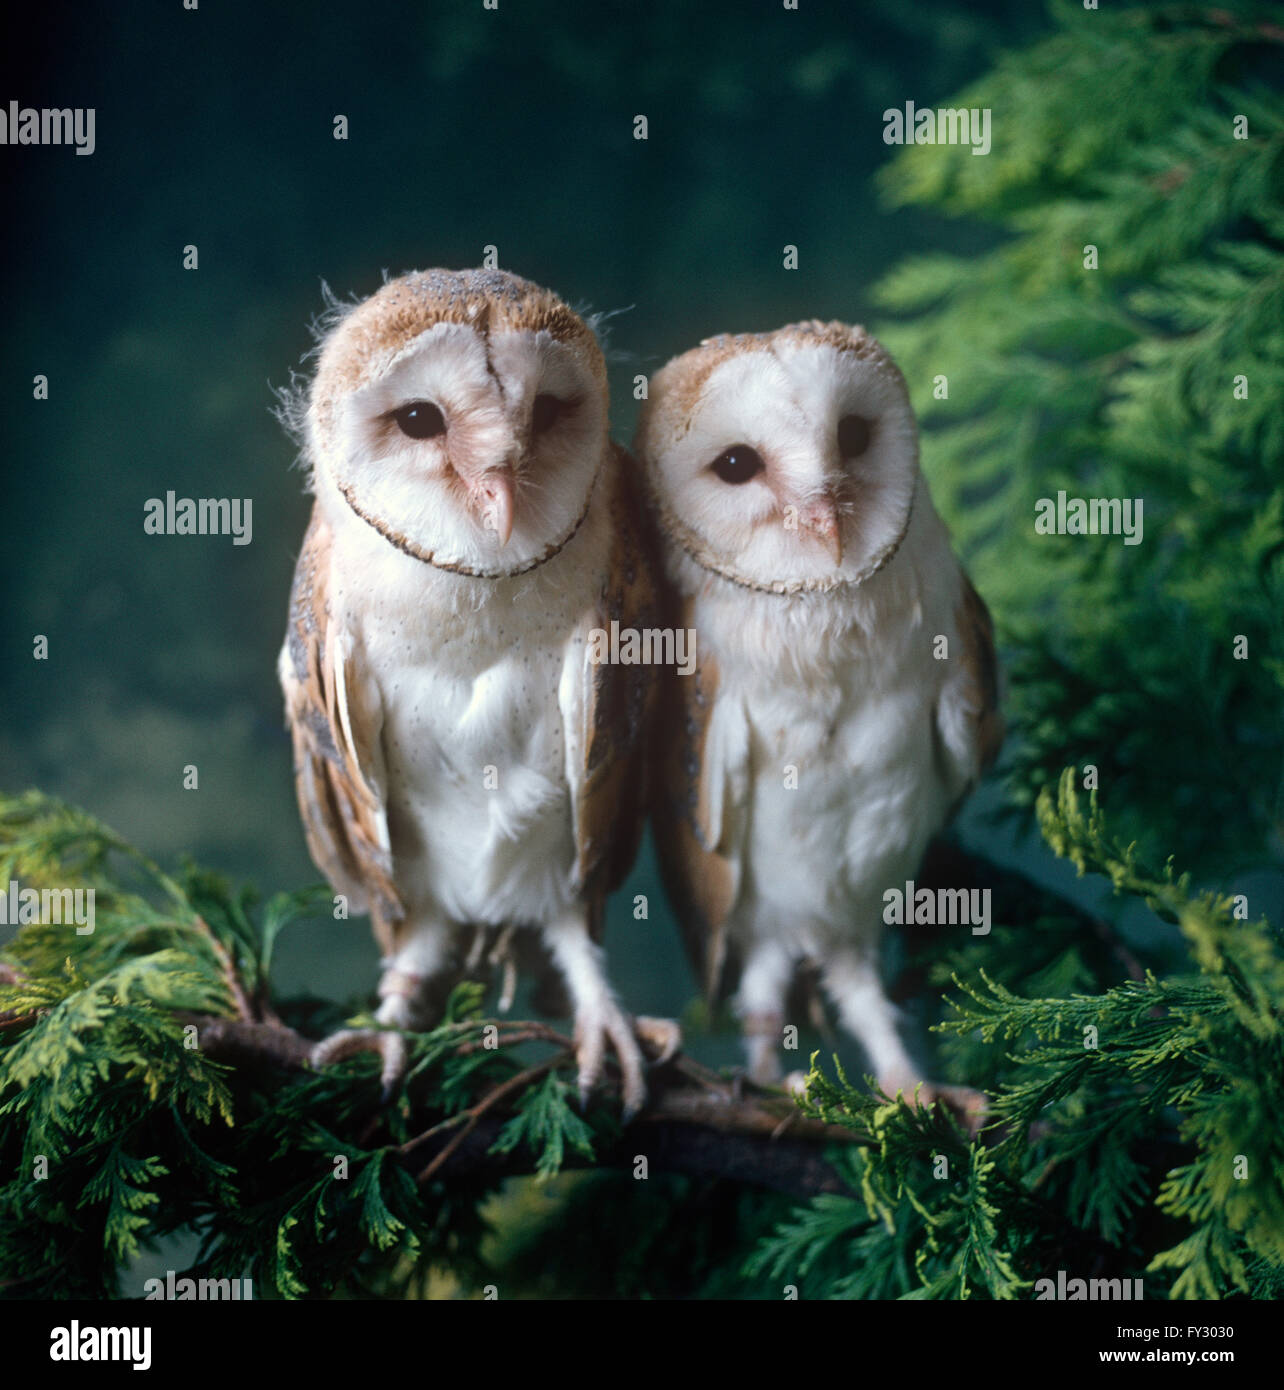 Two Barn owls sitting on a branch - Stock Image